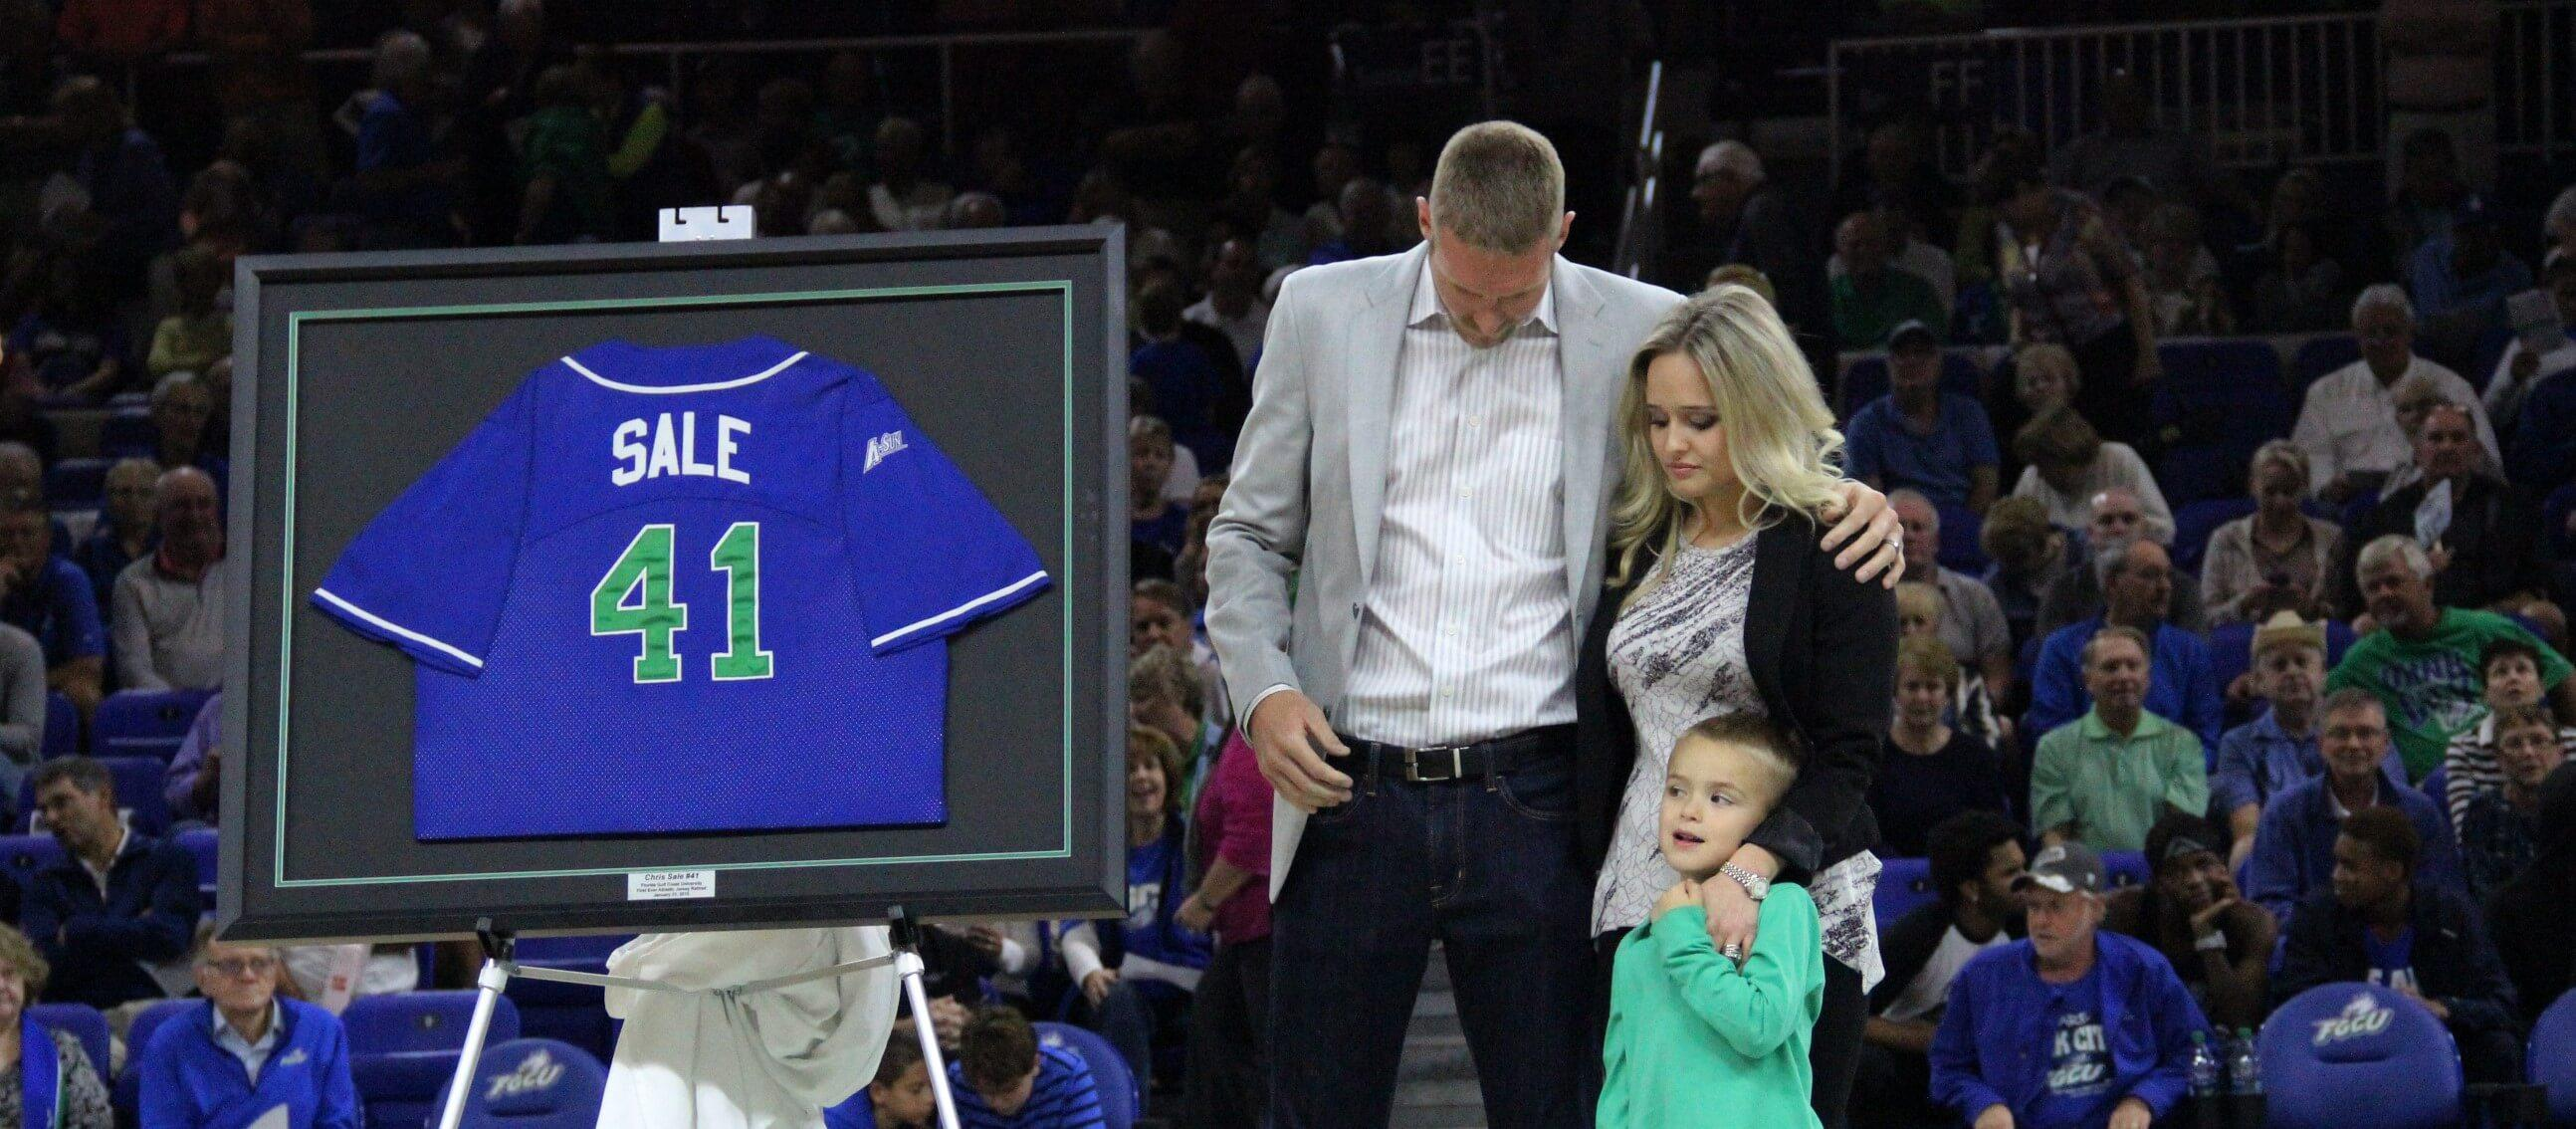 Chris Sale is first FGCU athlete  to have jersey number retired